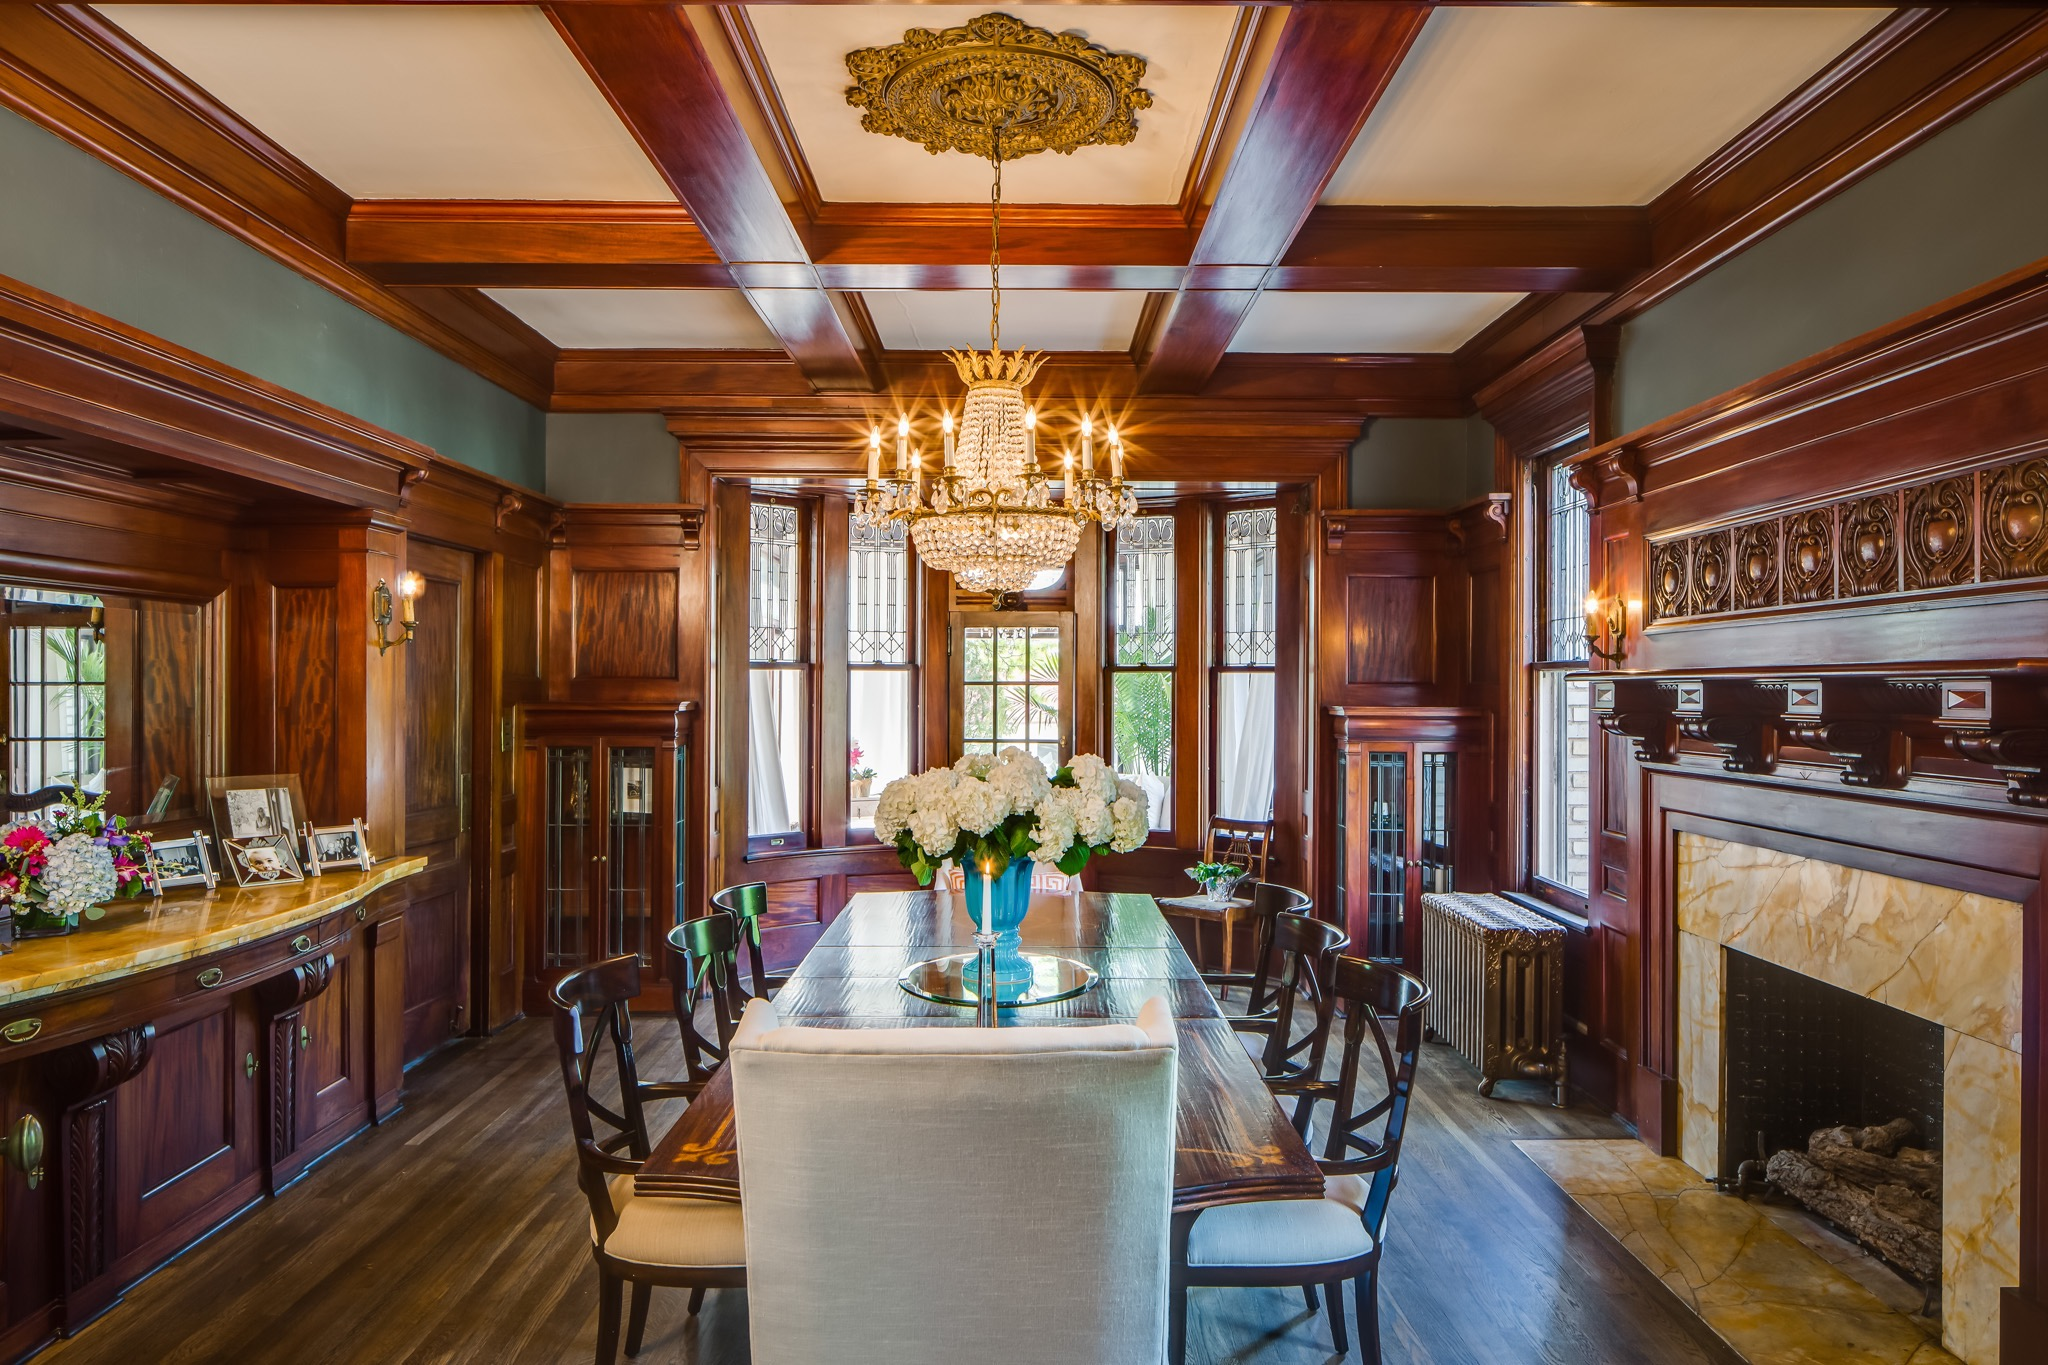 Traditional Dining Room Remodel To Formal Design (Image 28 of 30)